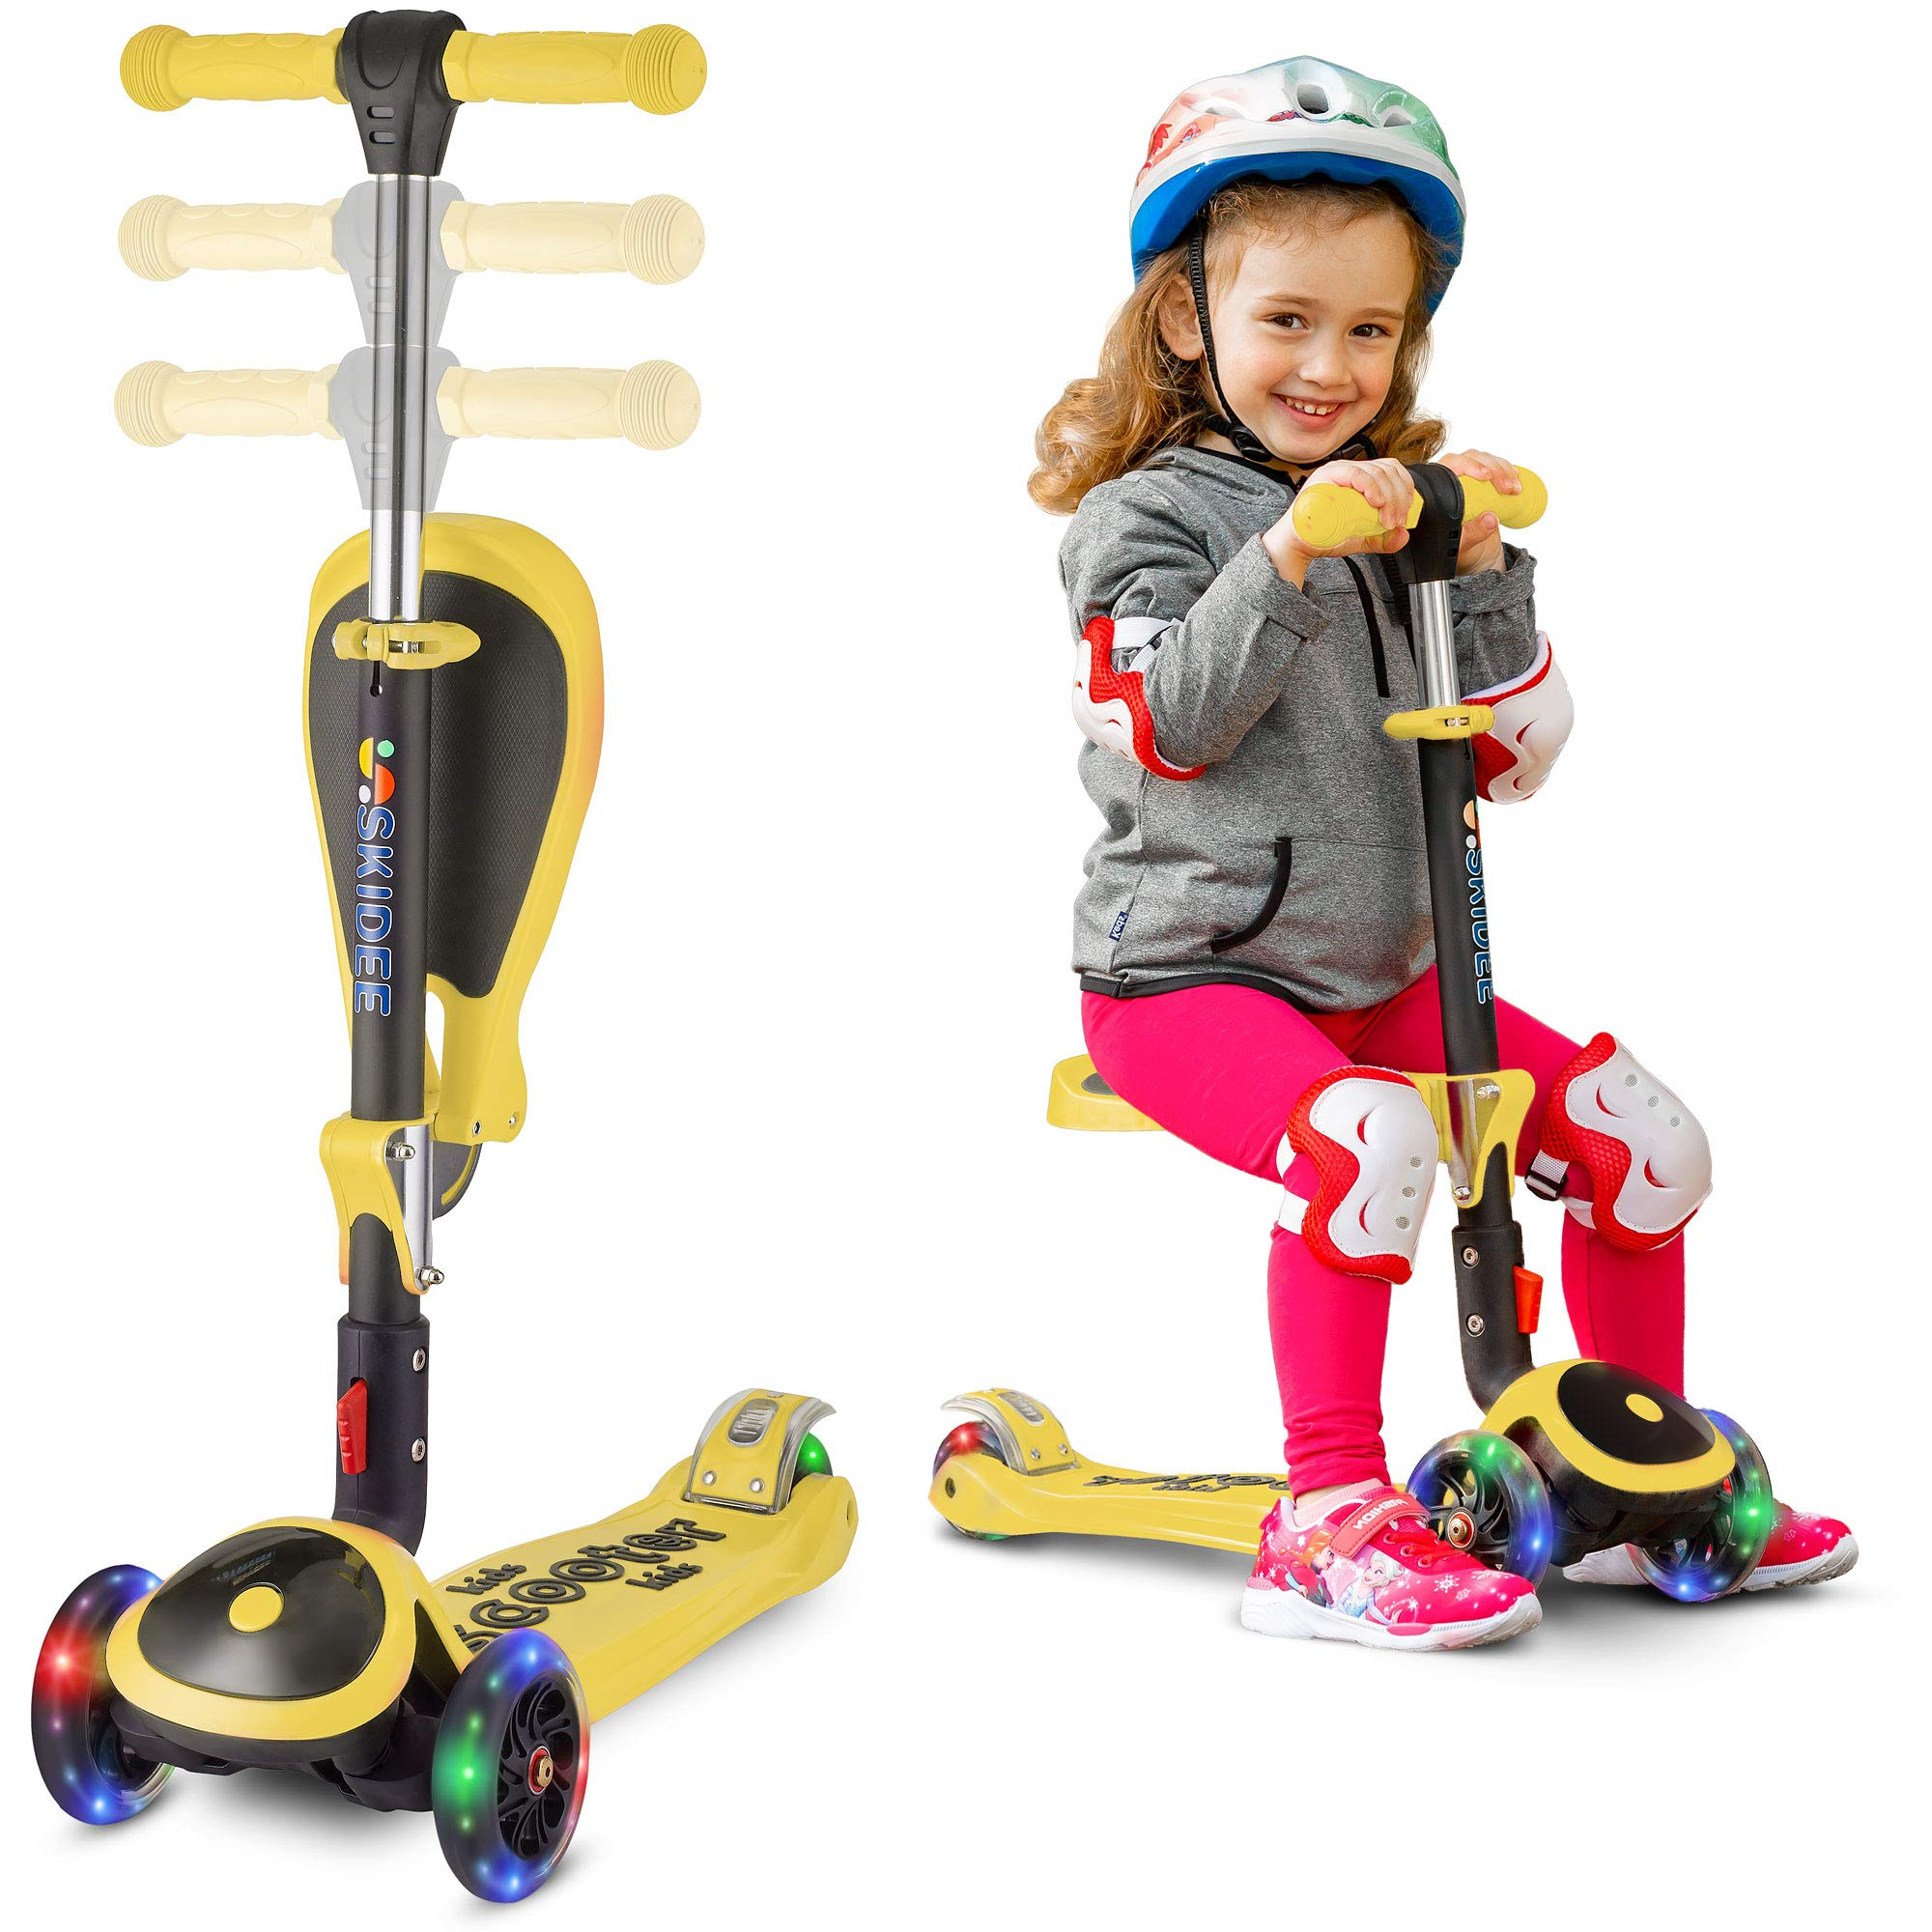 Scooter For Kids with Folding Seat - 2-in-1 Adjustable 3 Wheel Kick Scooter for Toddlers Girls & Boys - Fun Outdoor Toys for Kids Fitness, Outside Games, Kid Activities - Y200 (Yellow, Scooter)